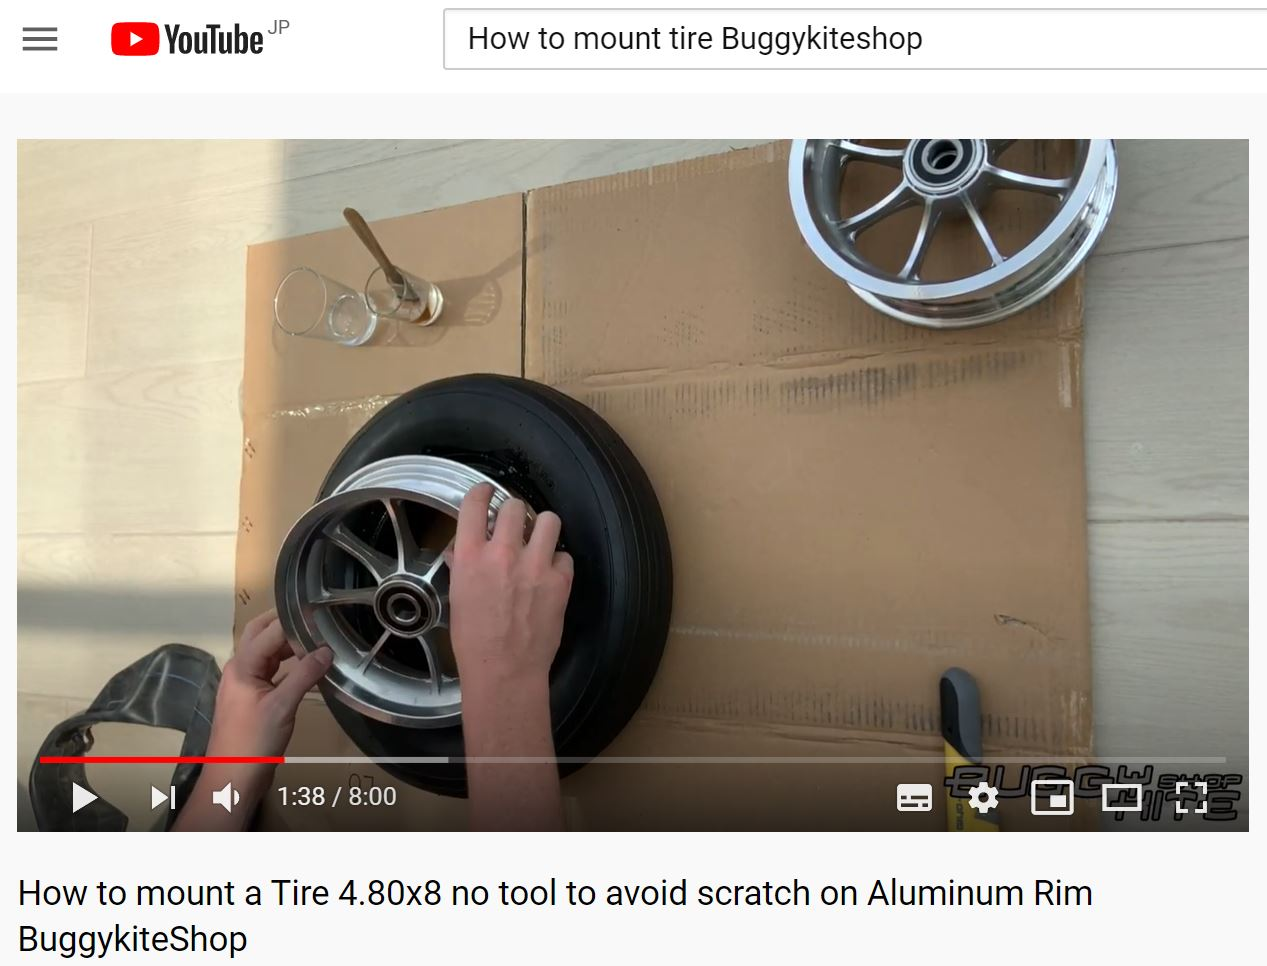 How to mount a tire, No tool